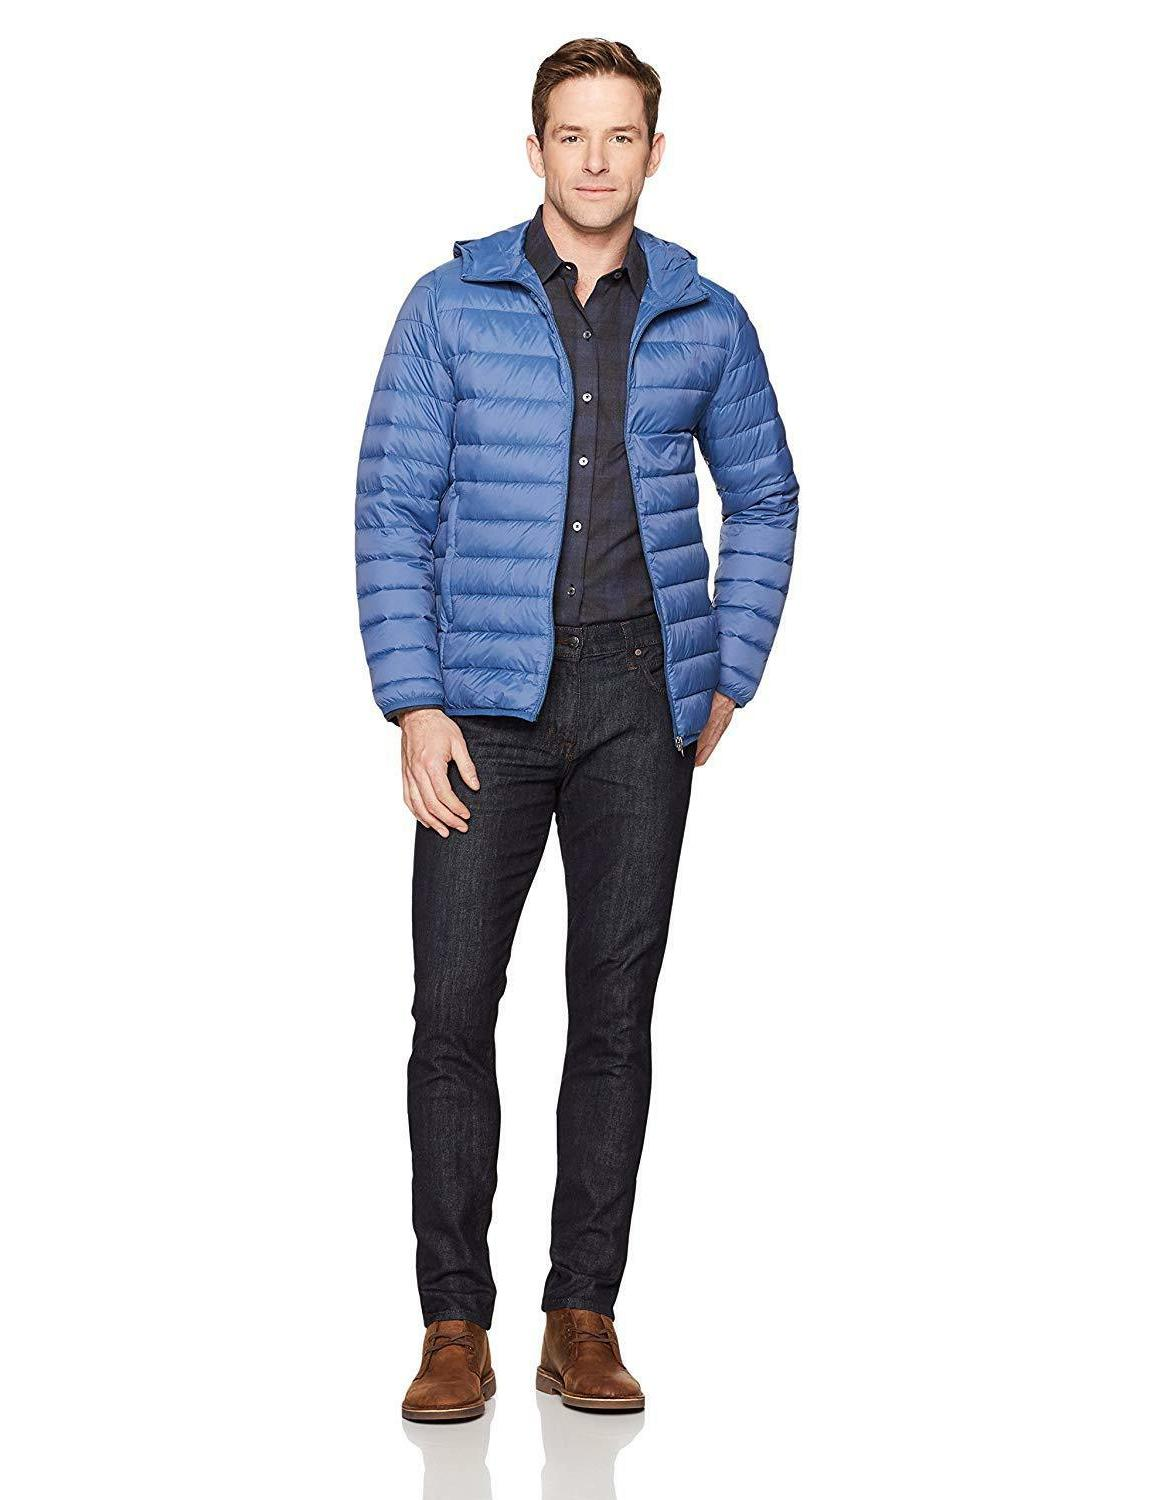 Amazon Essentials Water-Resistant Down Jacket